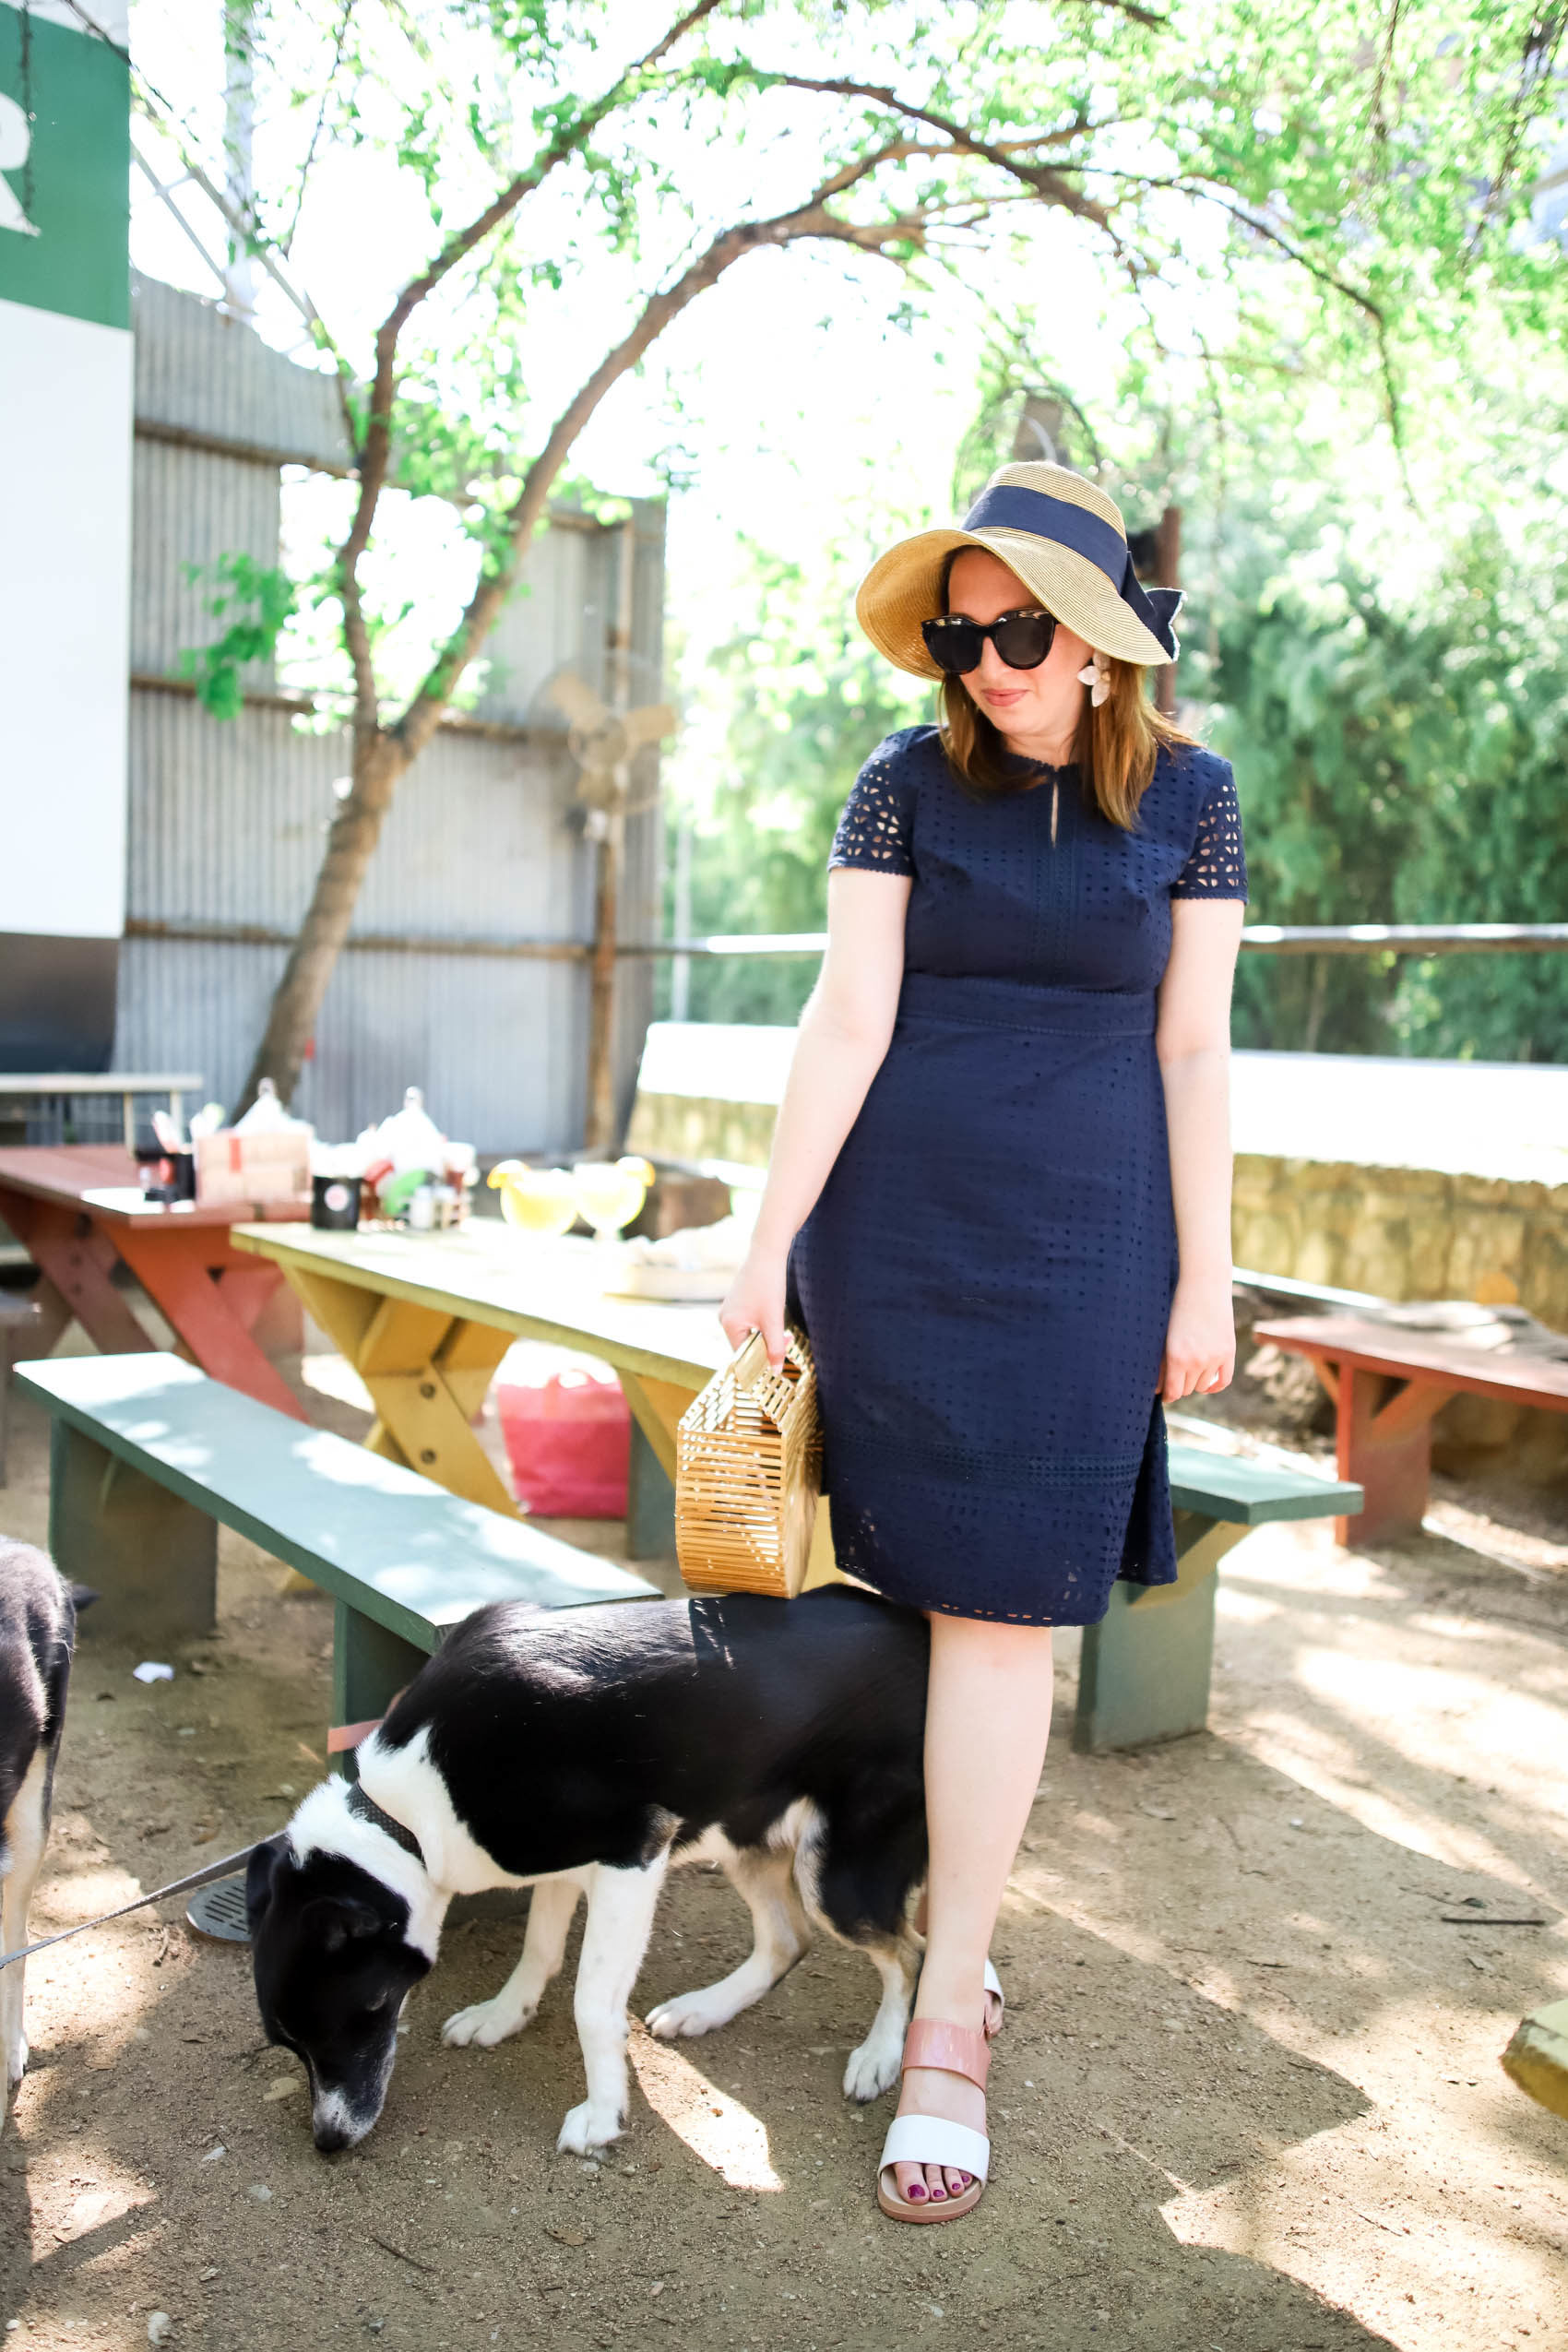 Navy eyelet dress and wide brim hat with navy bow detail | What to wear to a picnic | What to wear to a patio restaurant | What to wear in Dallas in the Spring #dallas #spring #outfit